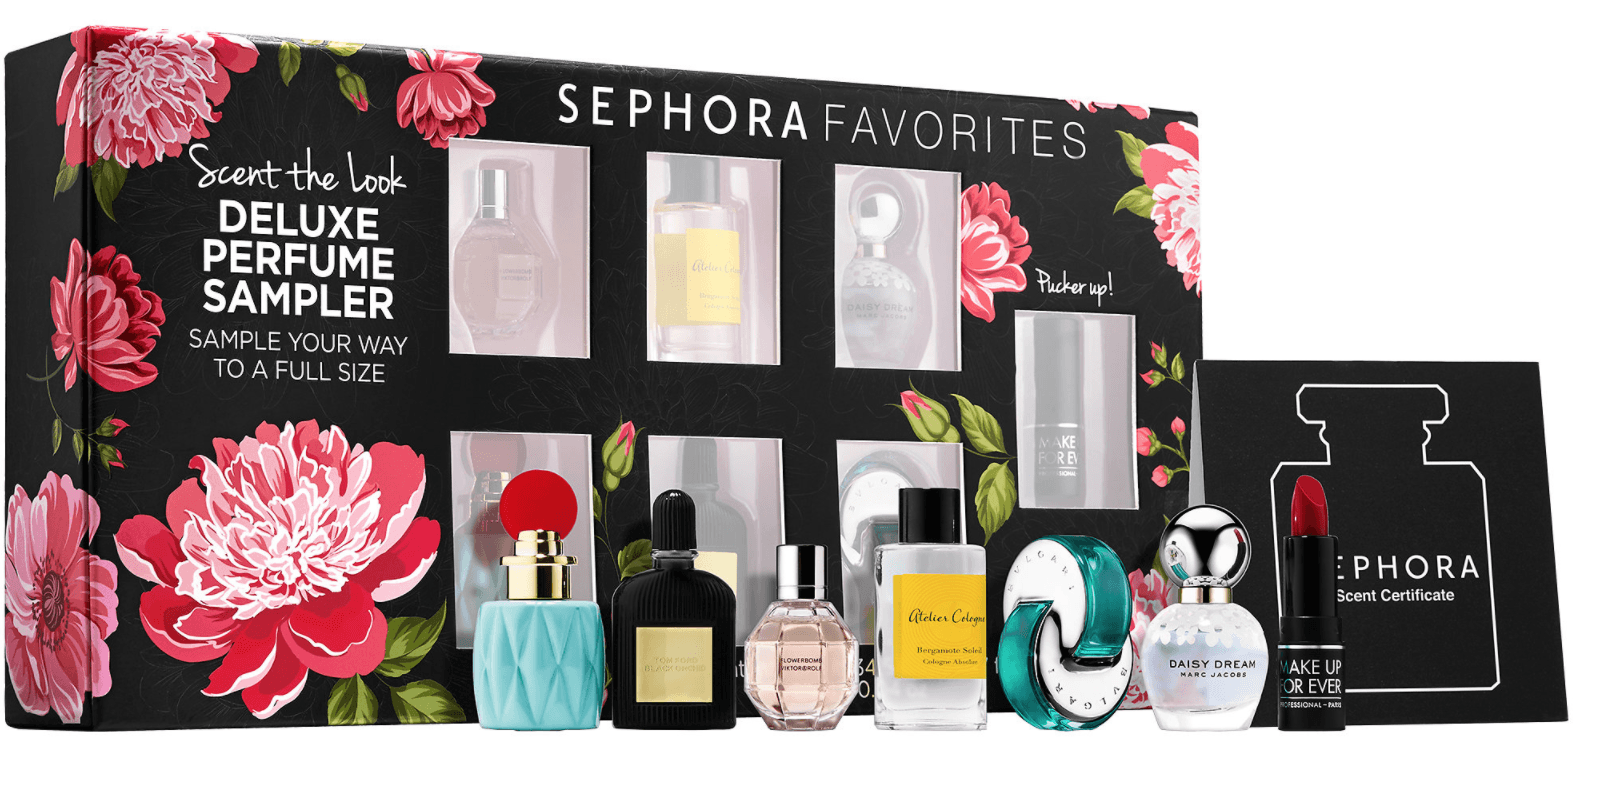 Black Friday 2017 Sephora >> Sephora Favorites Scent the Look Deluxe Perfume Sampler Available Now + Coupons - hello subscription